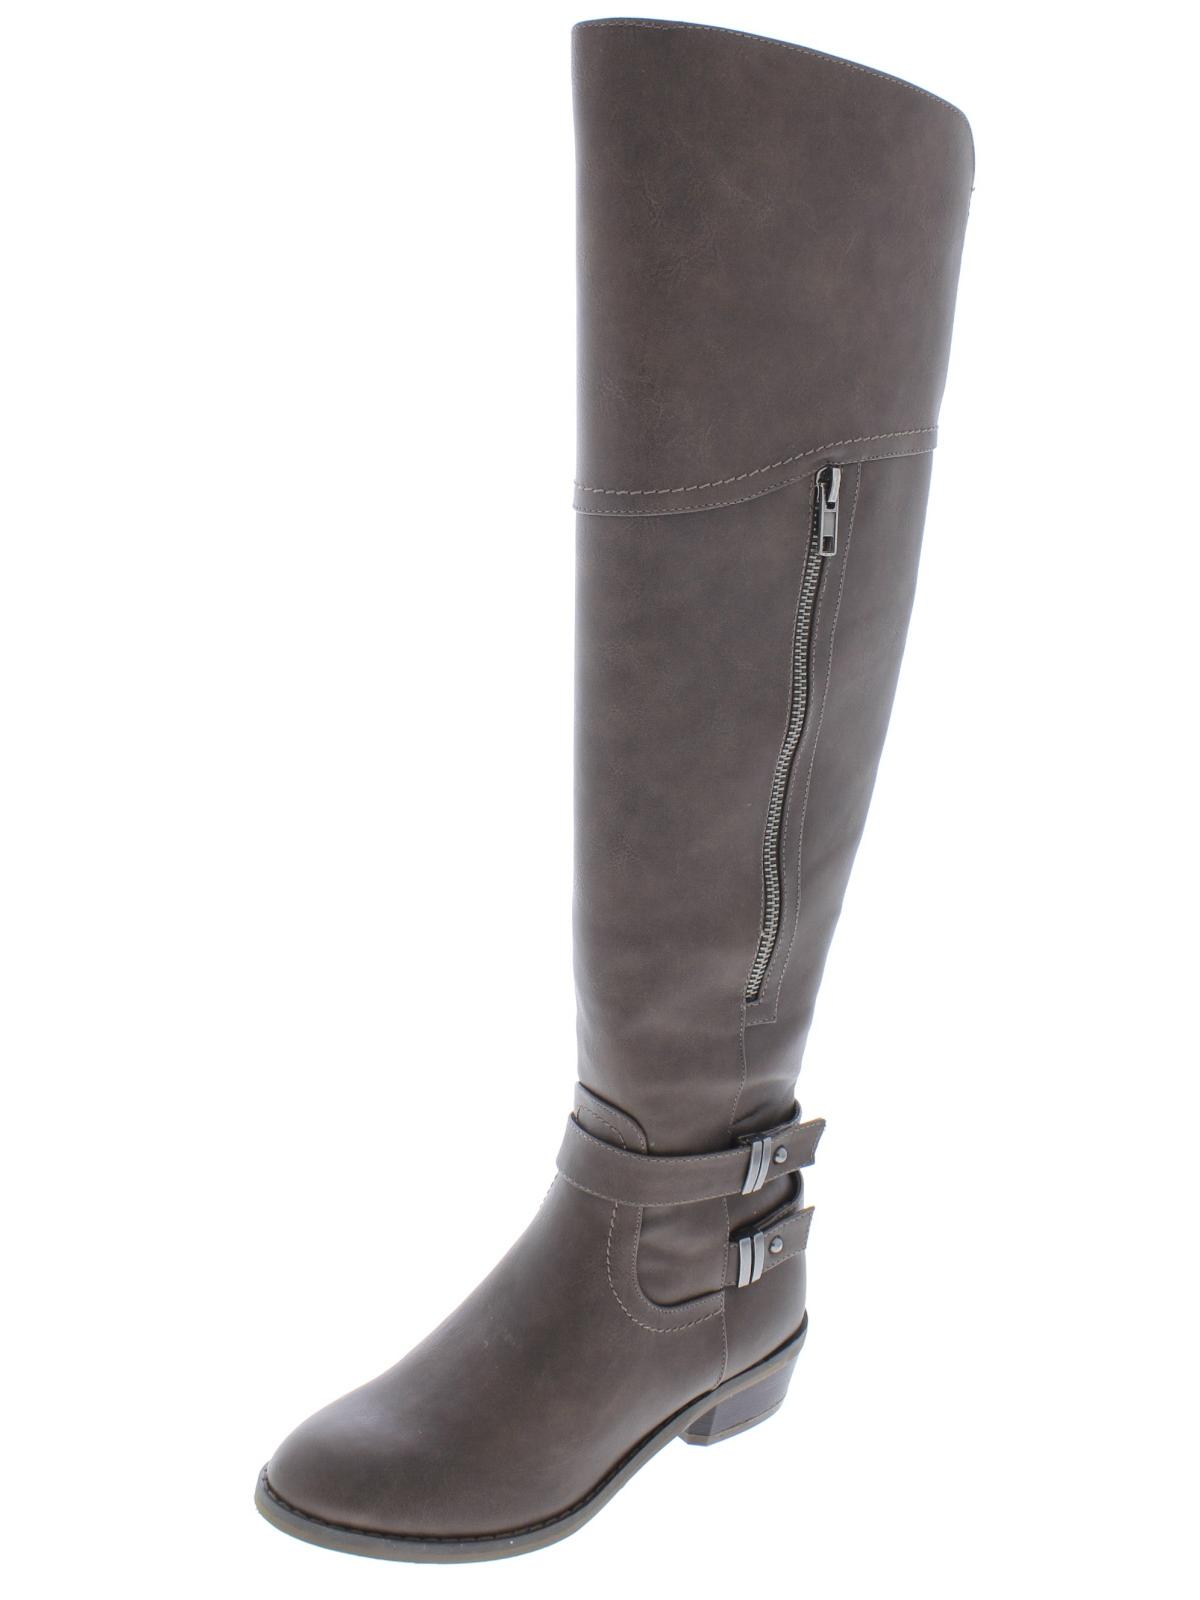 Indigo Rd. Womens Custom 2 Faux Leather Riding Over-The-Knee Boots